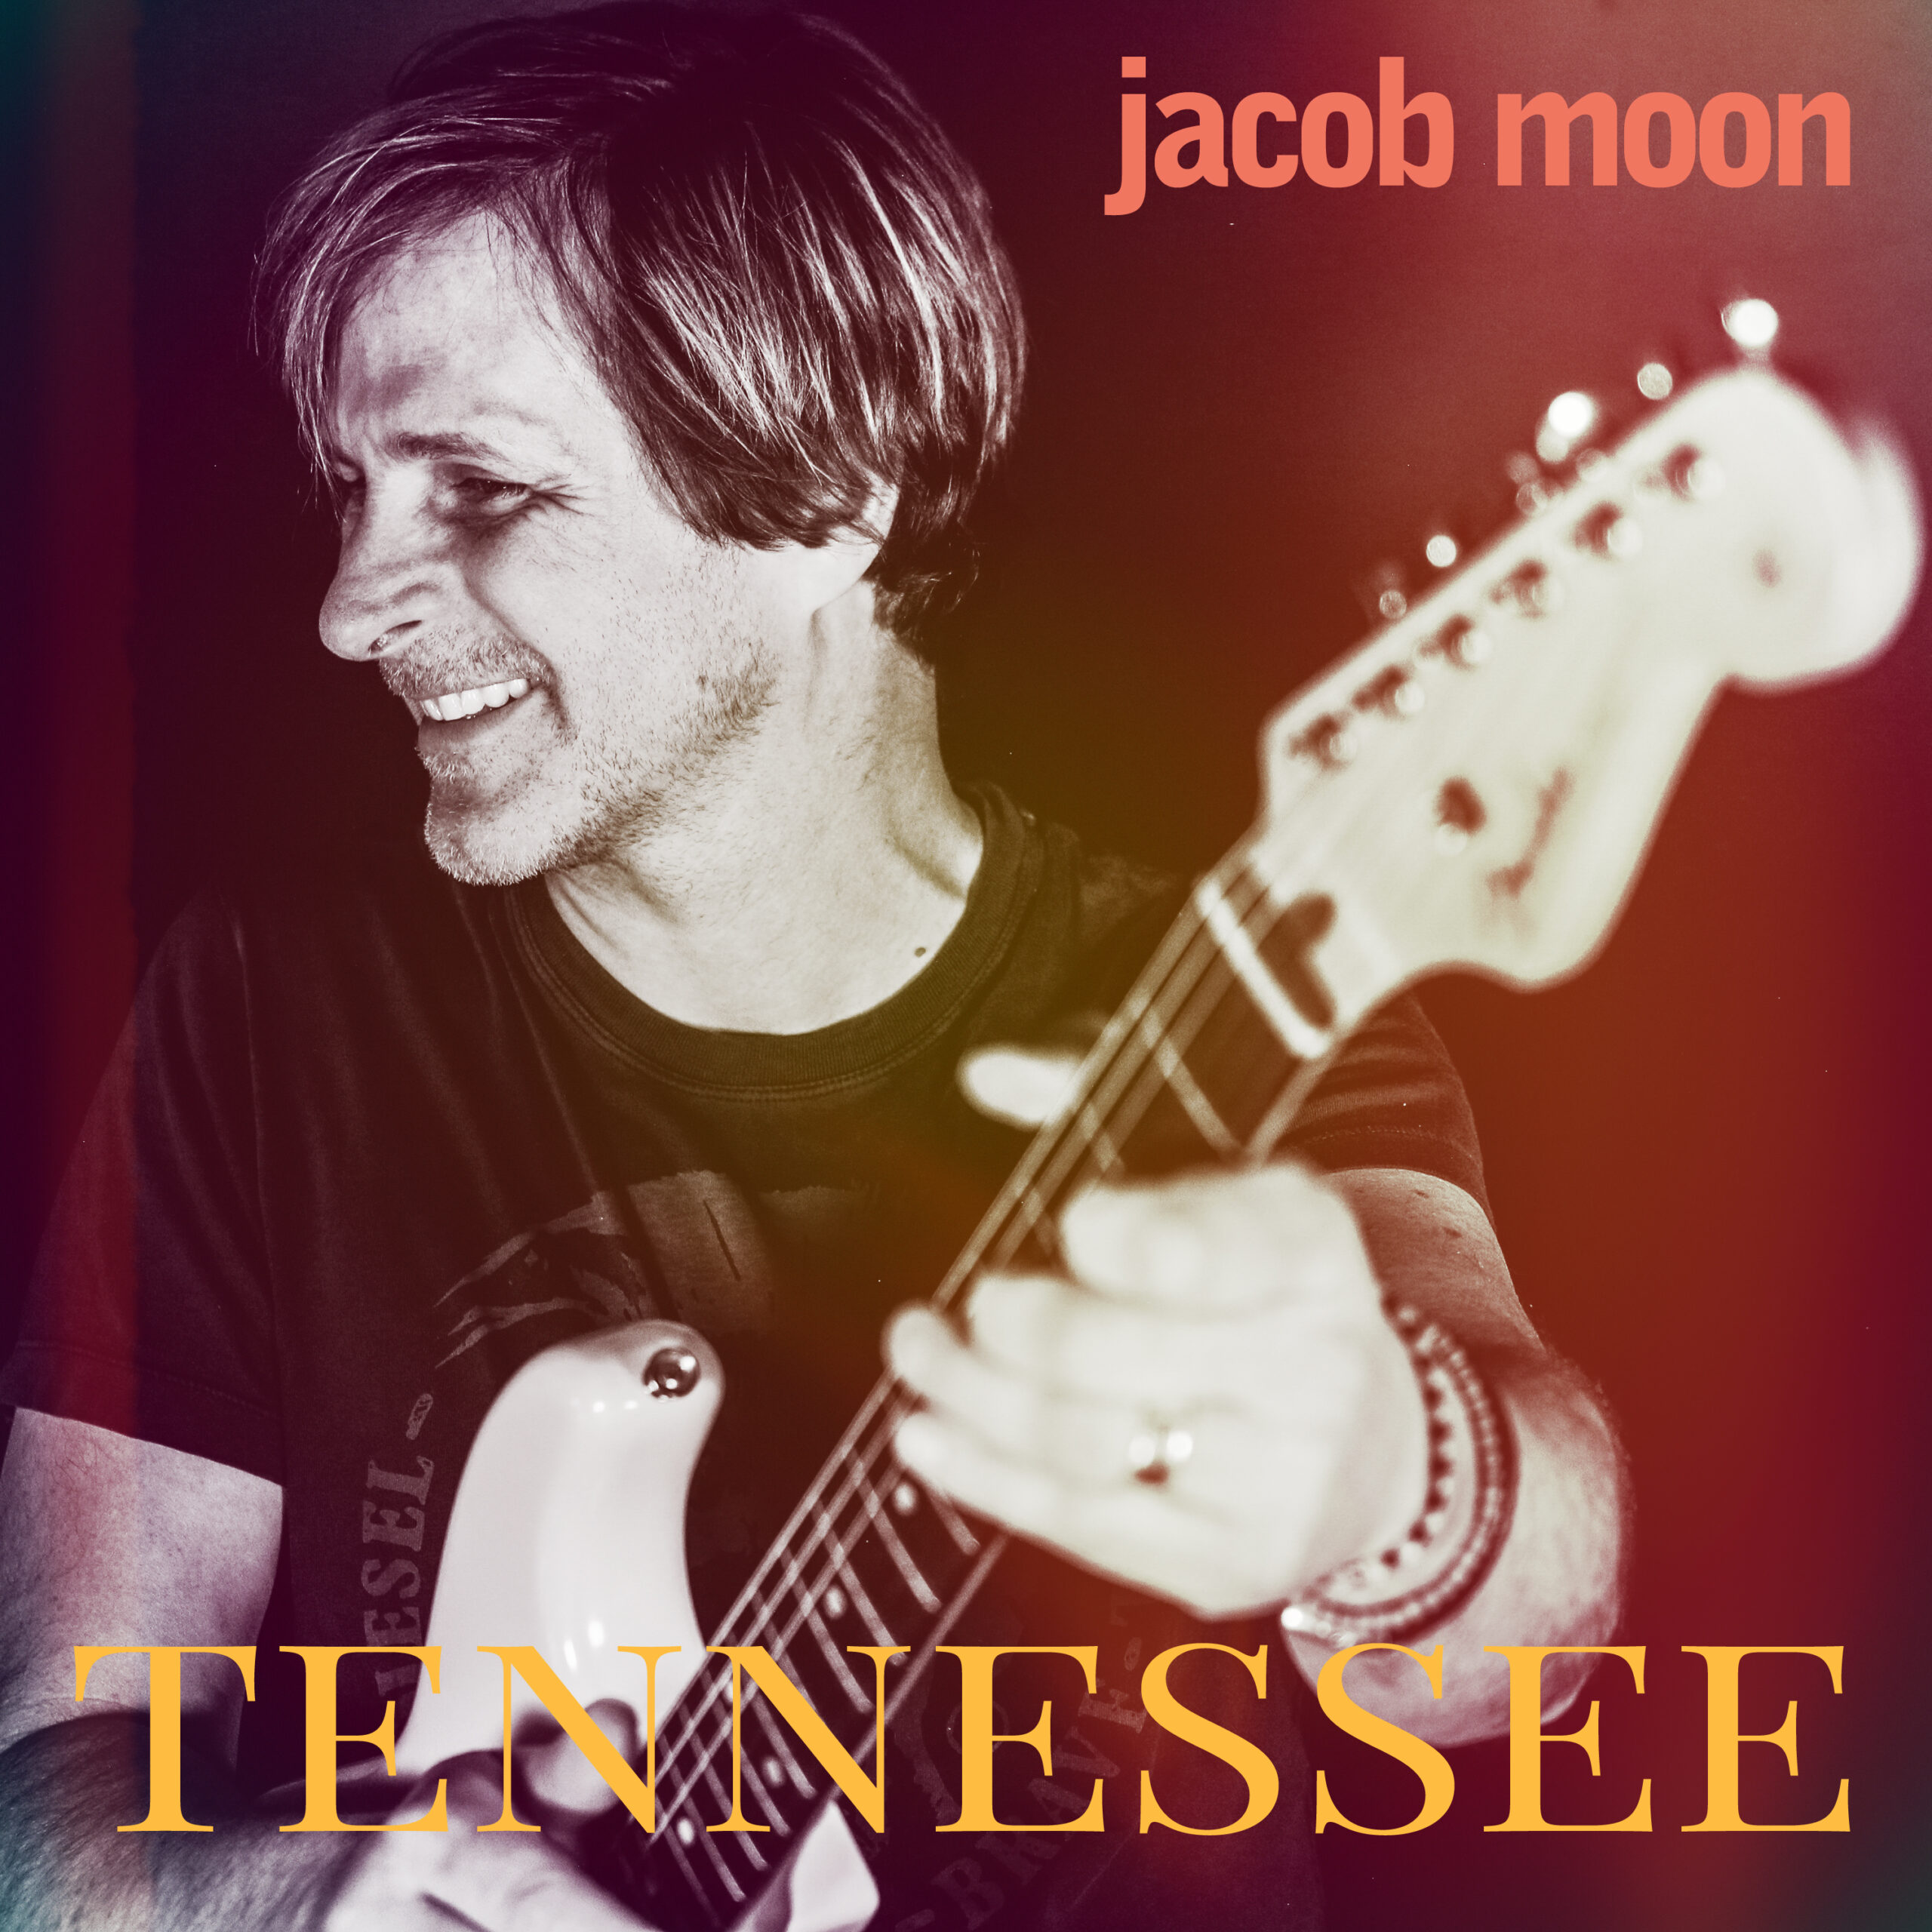 New single 'Tennessee' Drops Oct 22!